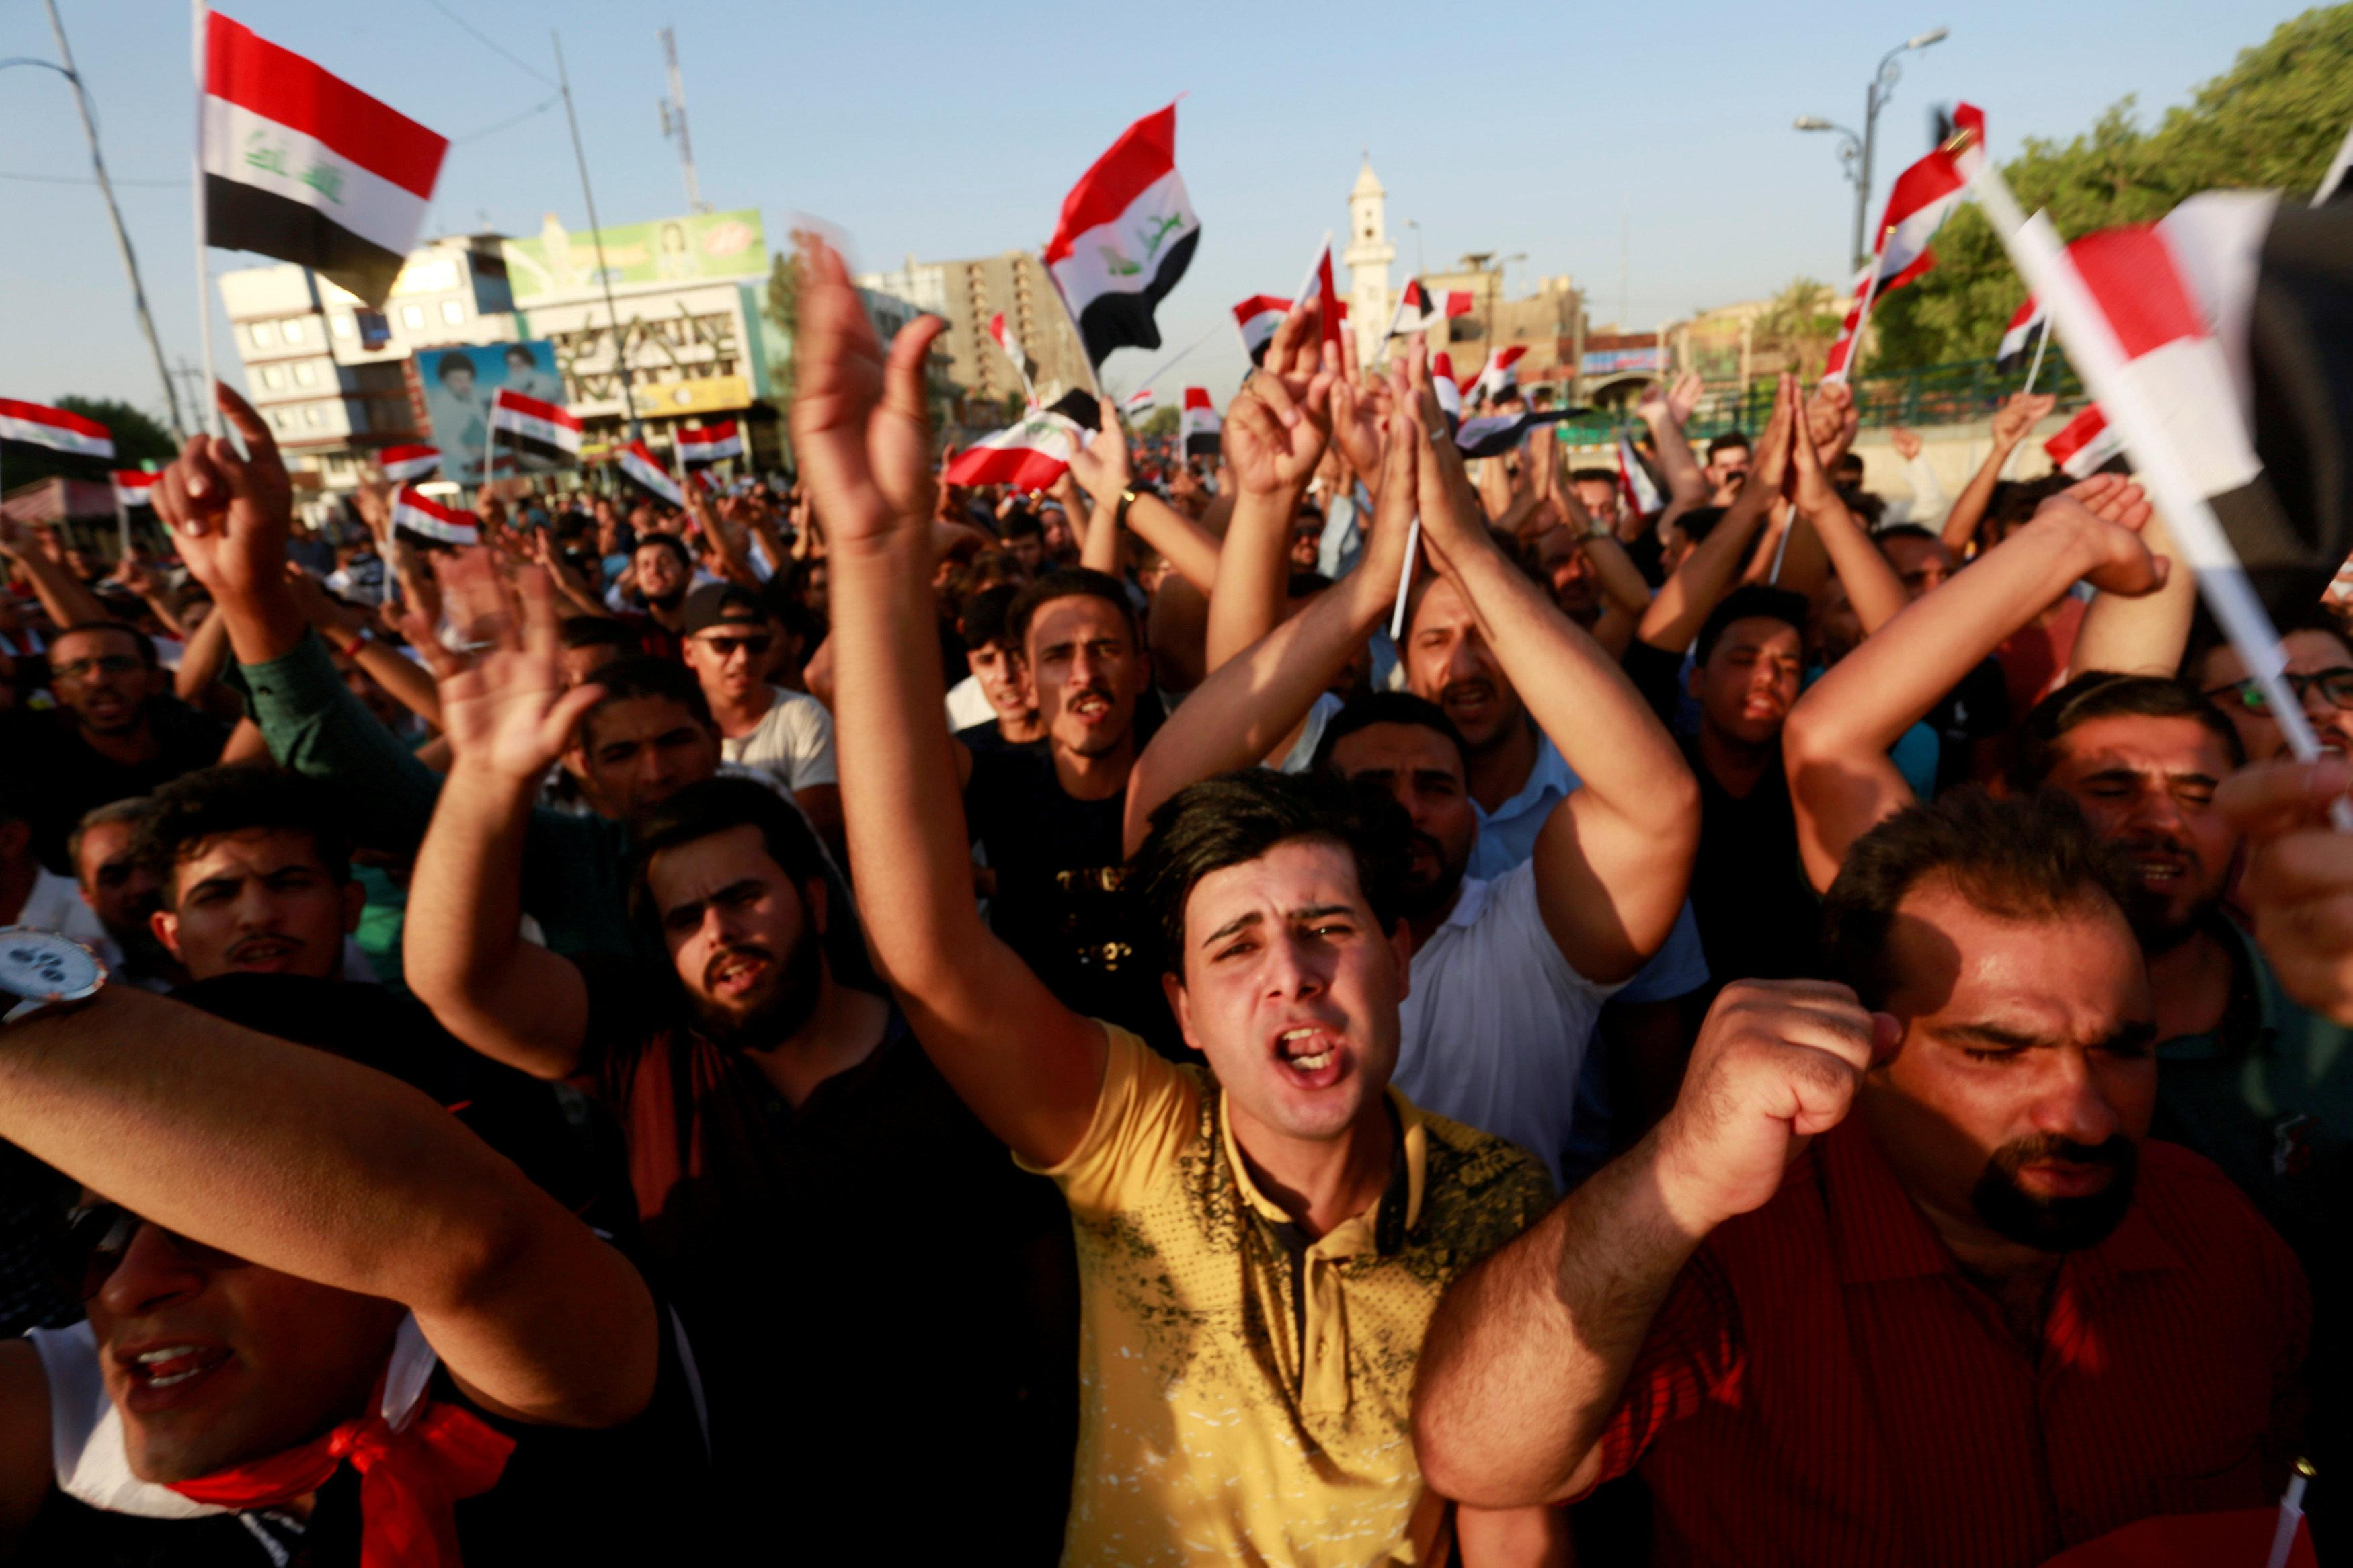 Iraqi PM suspends electricity minister amid unrest over poor services